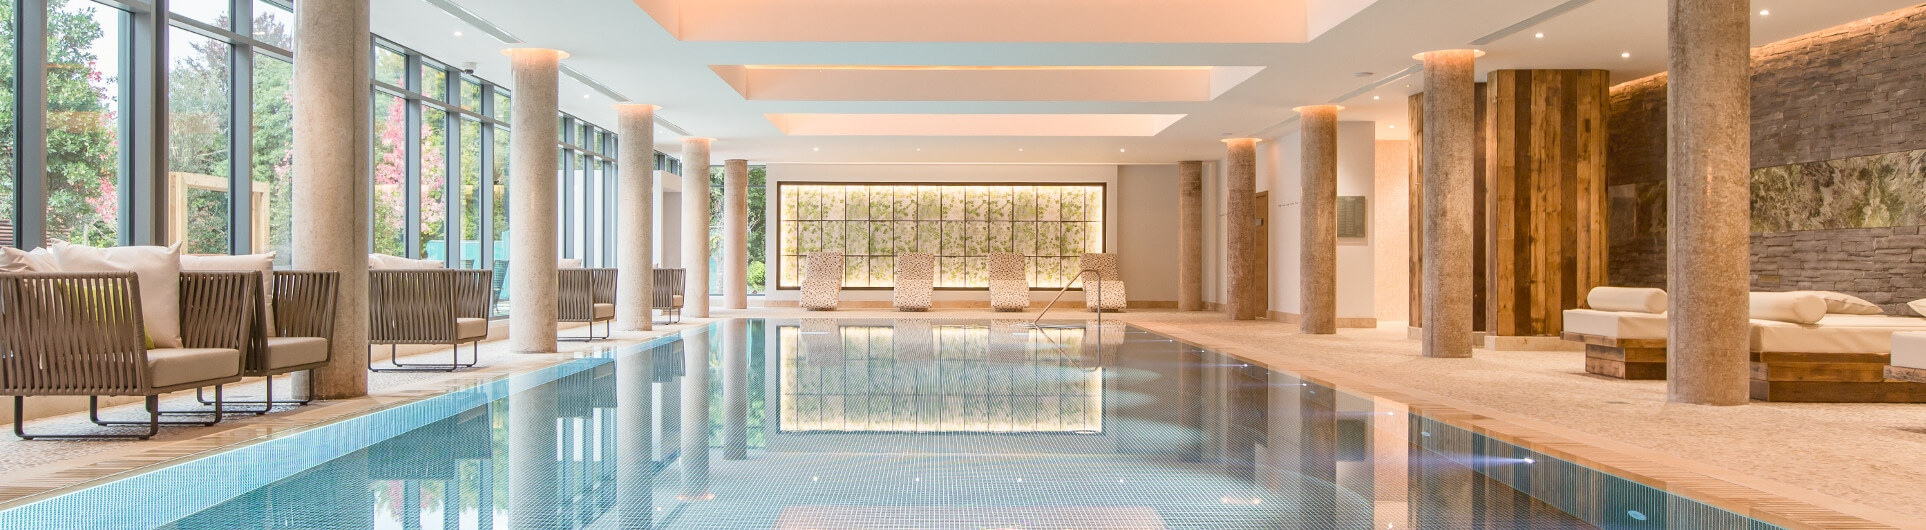 Hotels With Swimming Pool Northern Ireland Galgorm Resort Spa